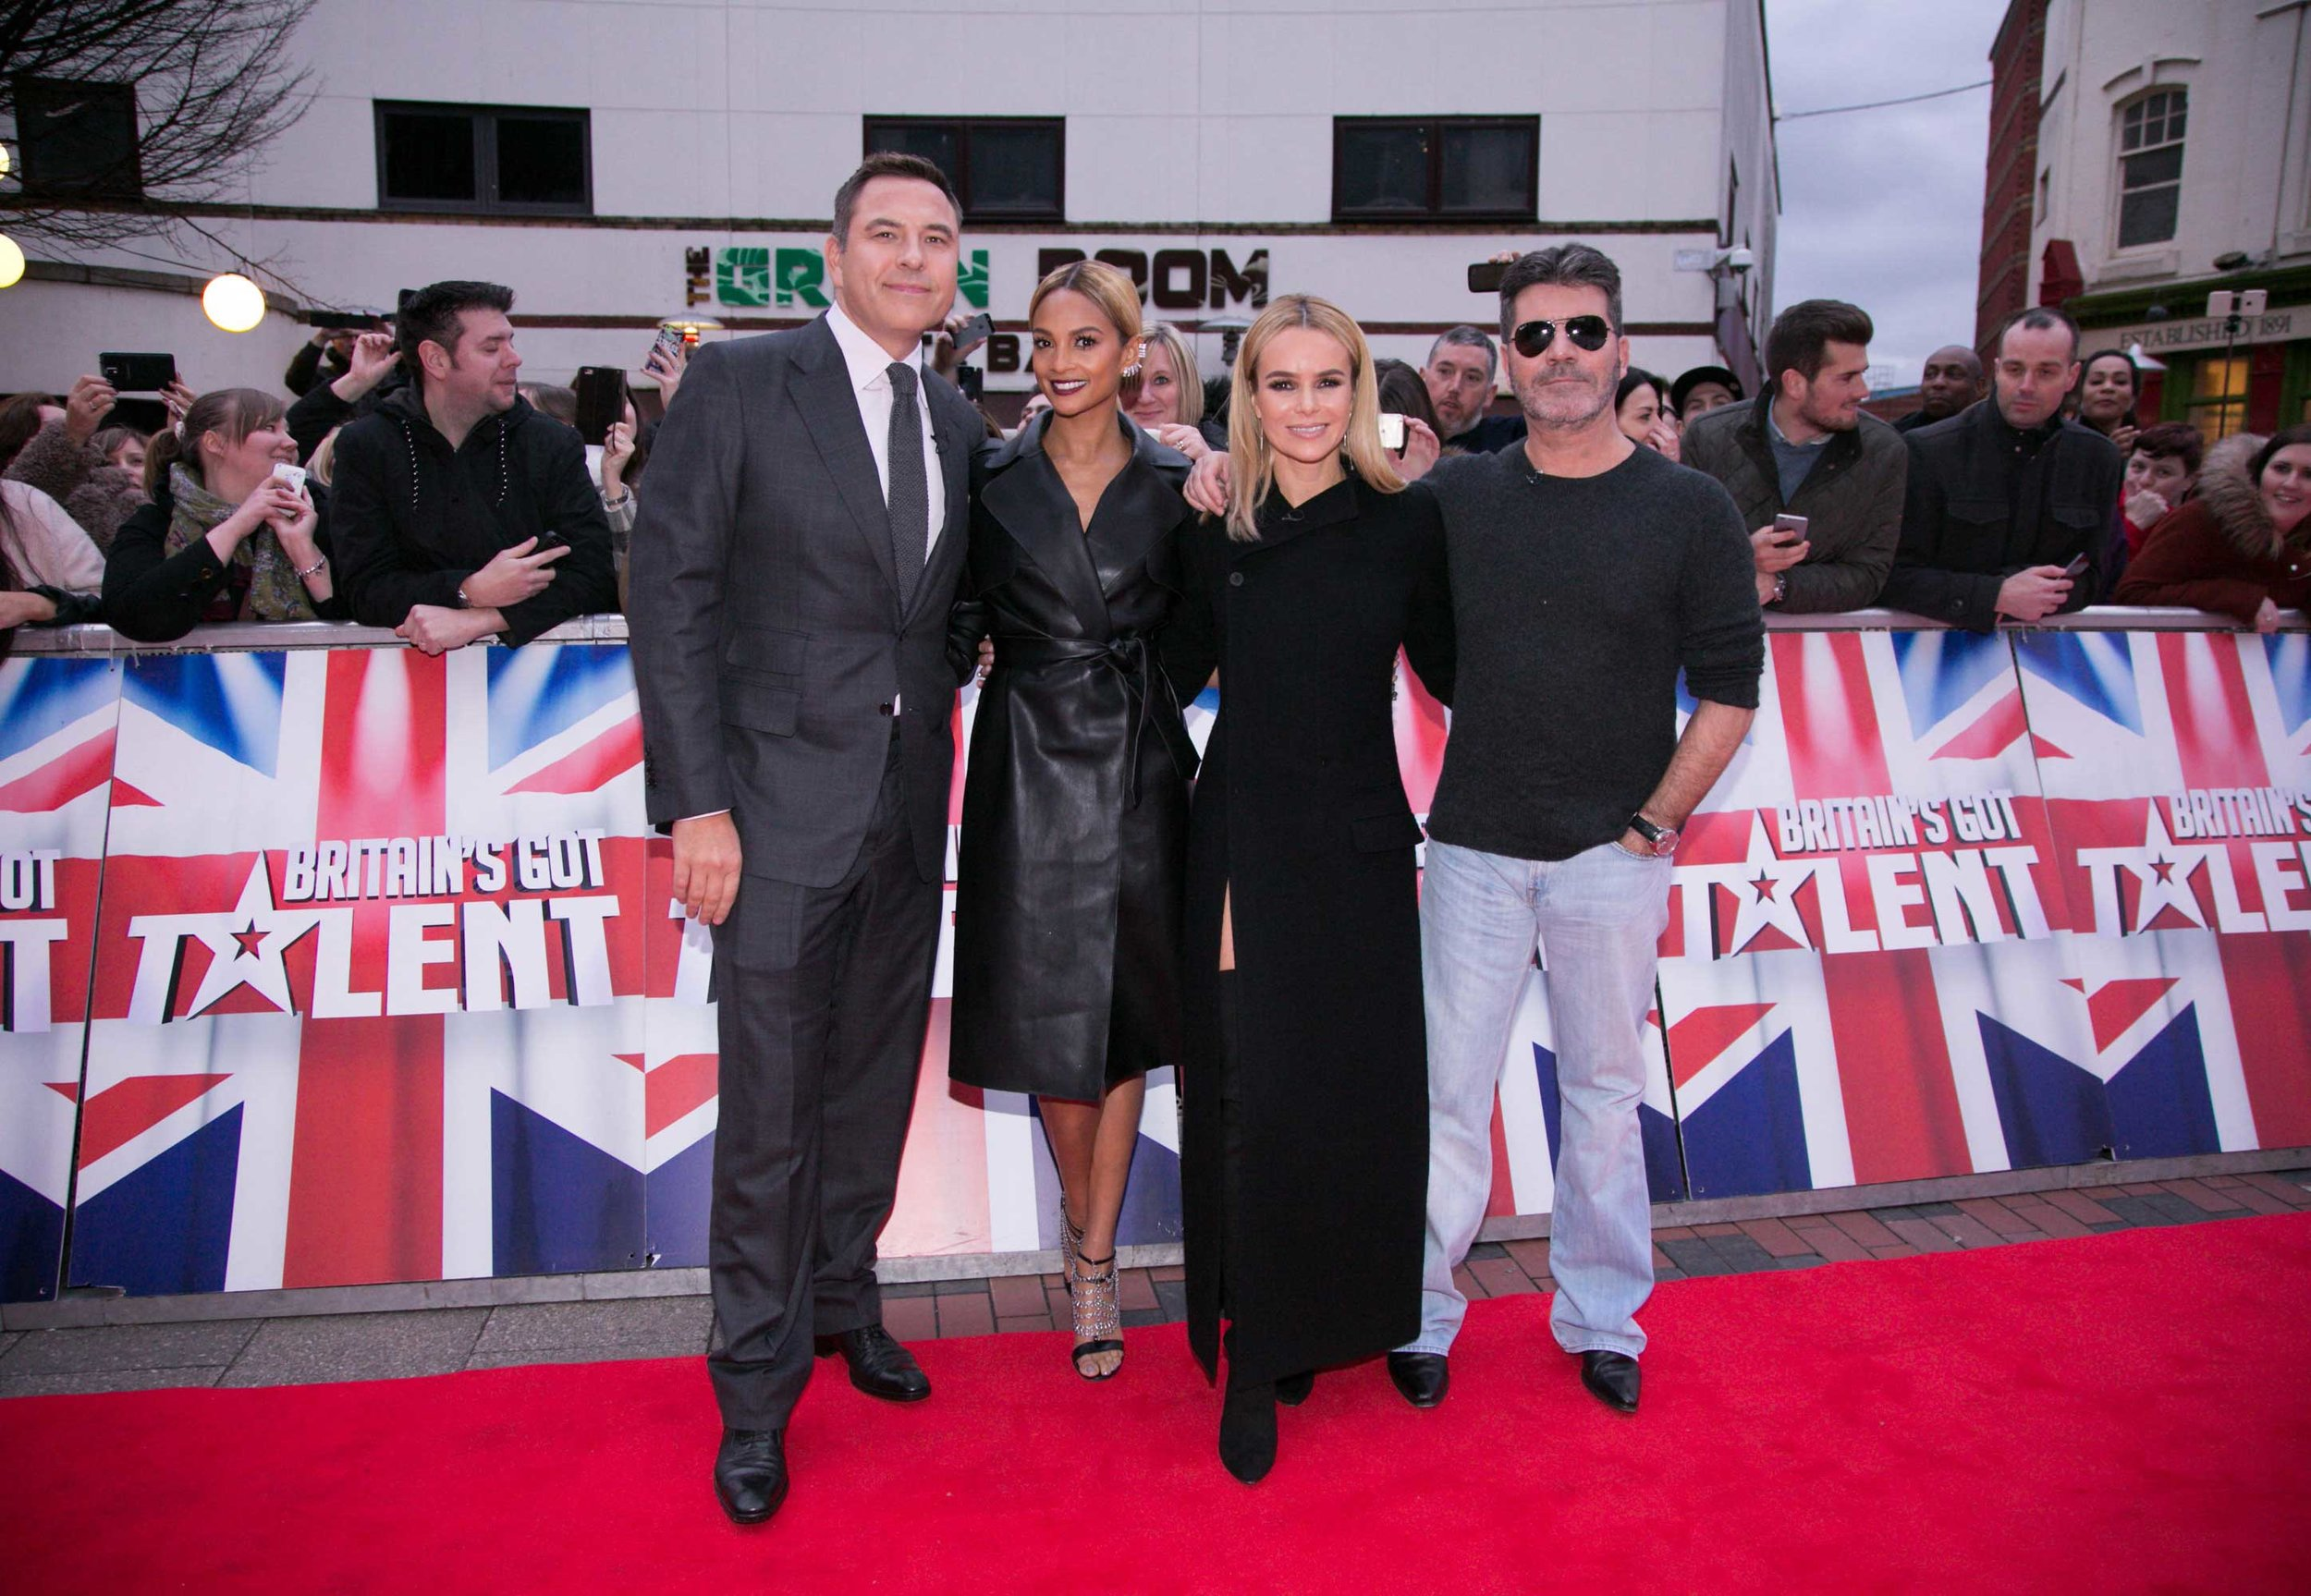 Simon is also having Britain's Got Talent's Alesha Dixon as a judge who has previously worked with Bruno on Strictly Come Dancing